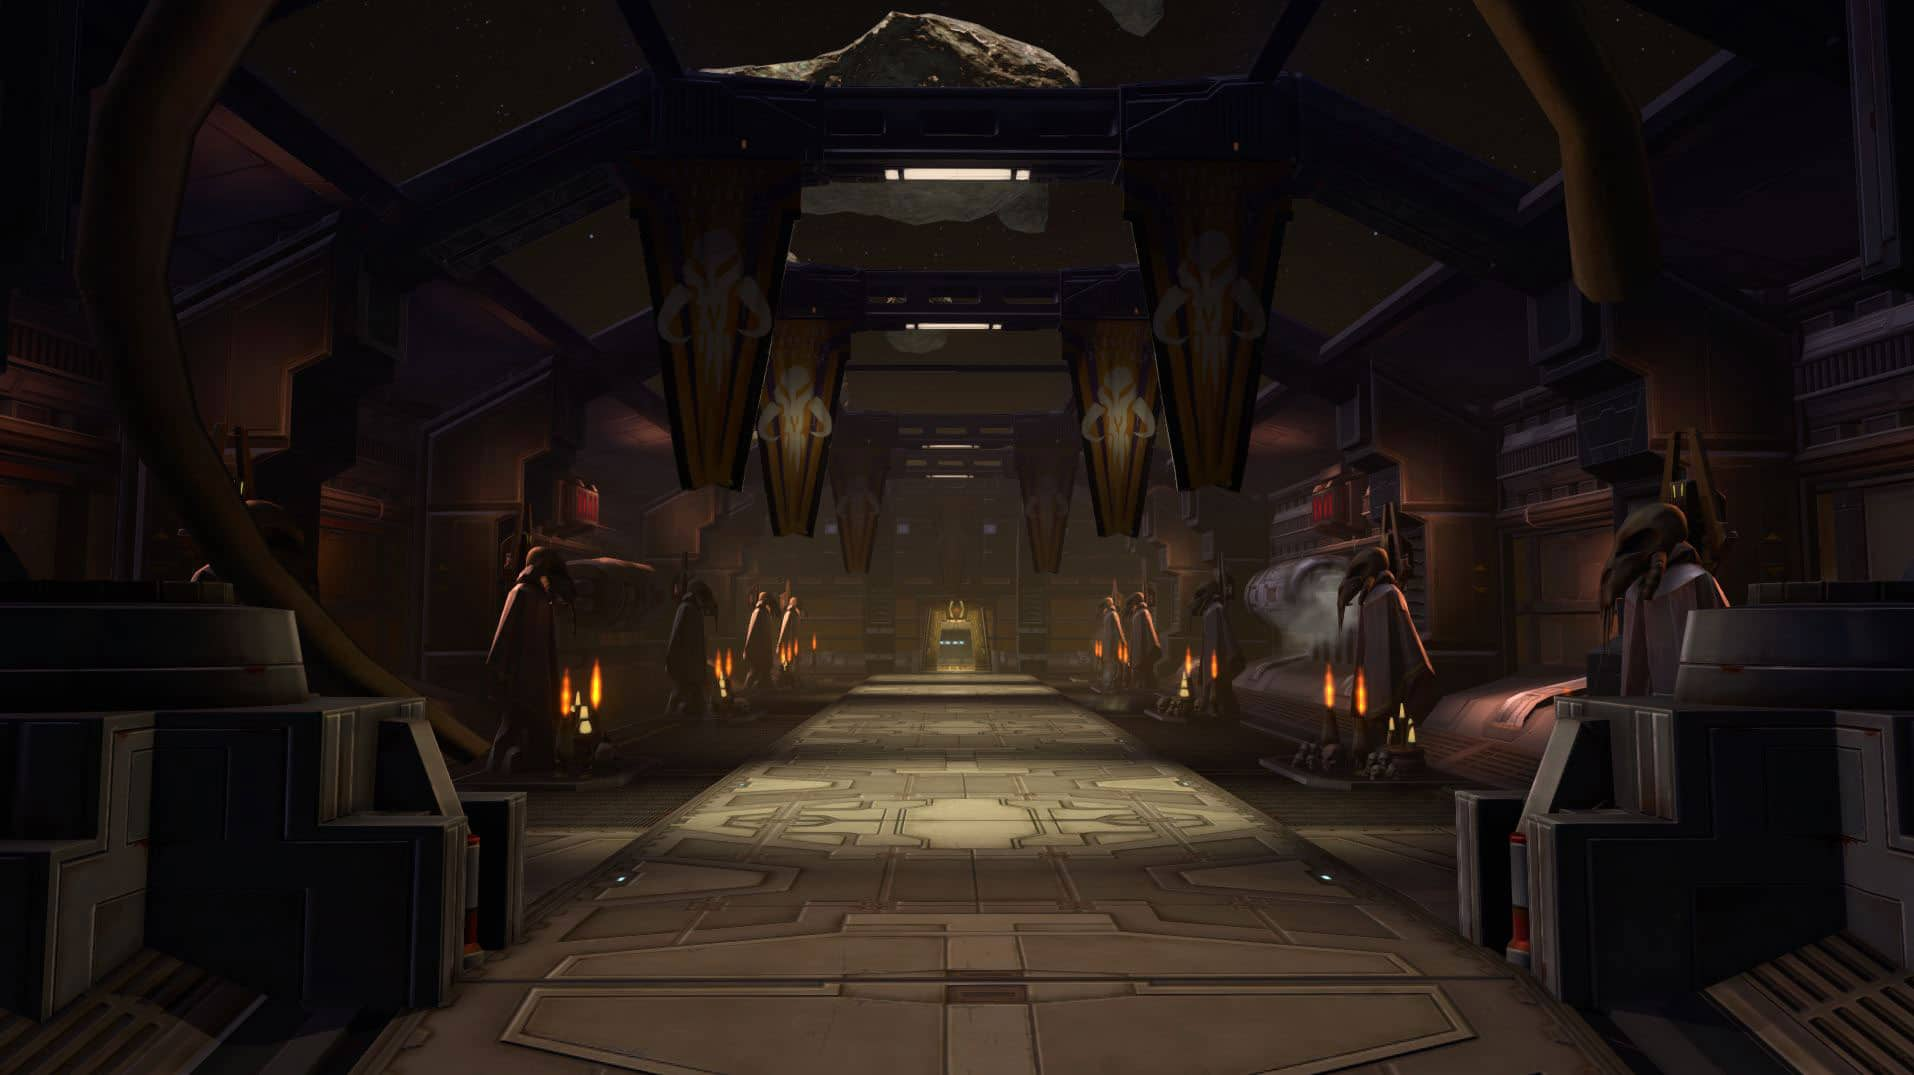 SWTOR 6.2 Flashpoint preview image